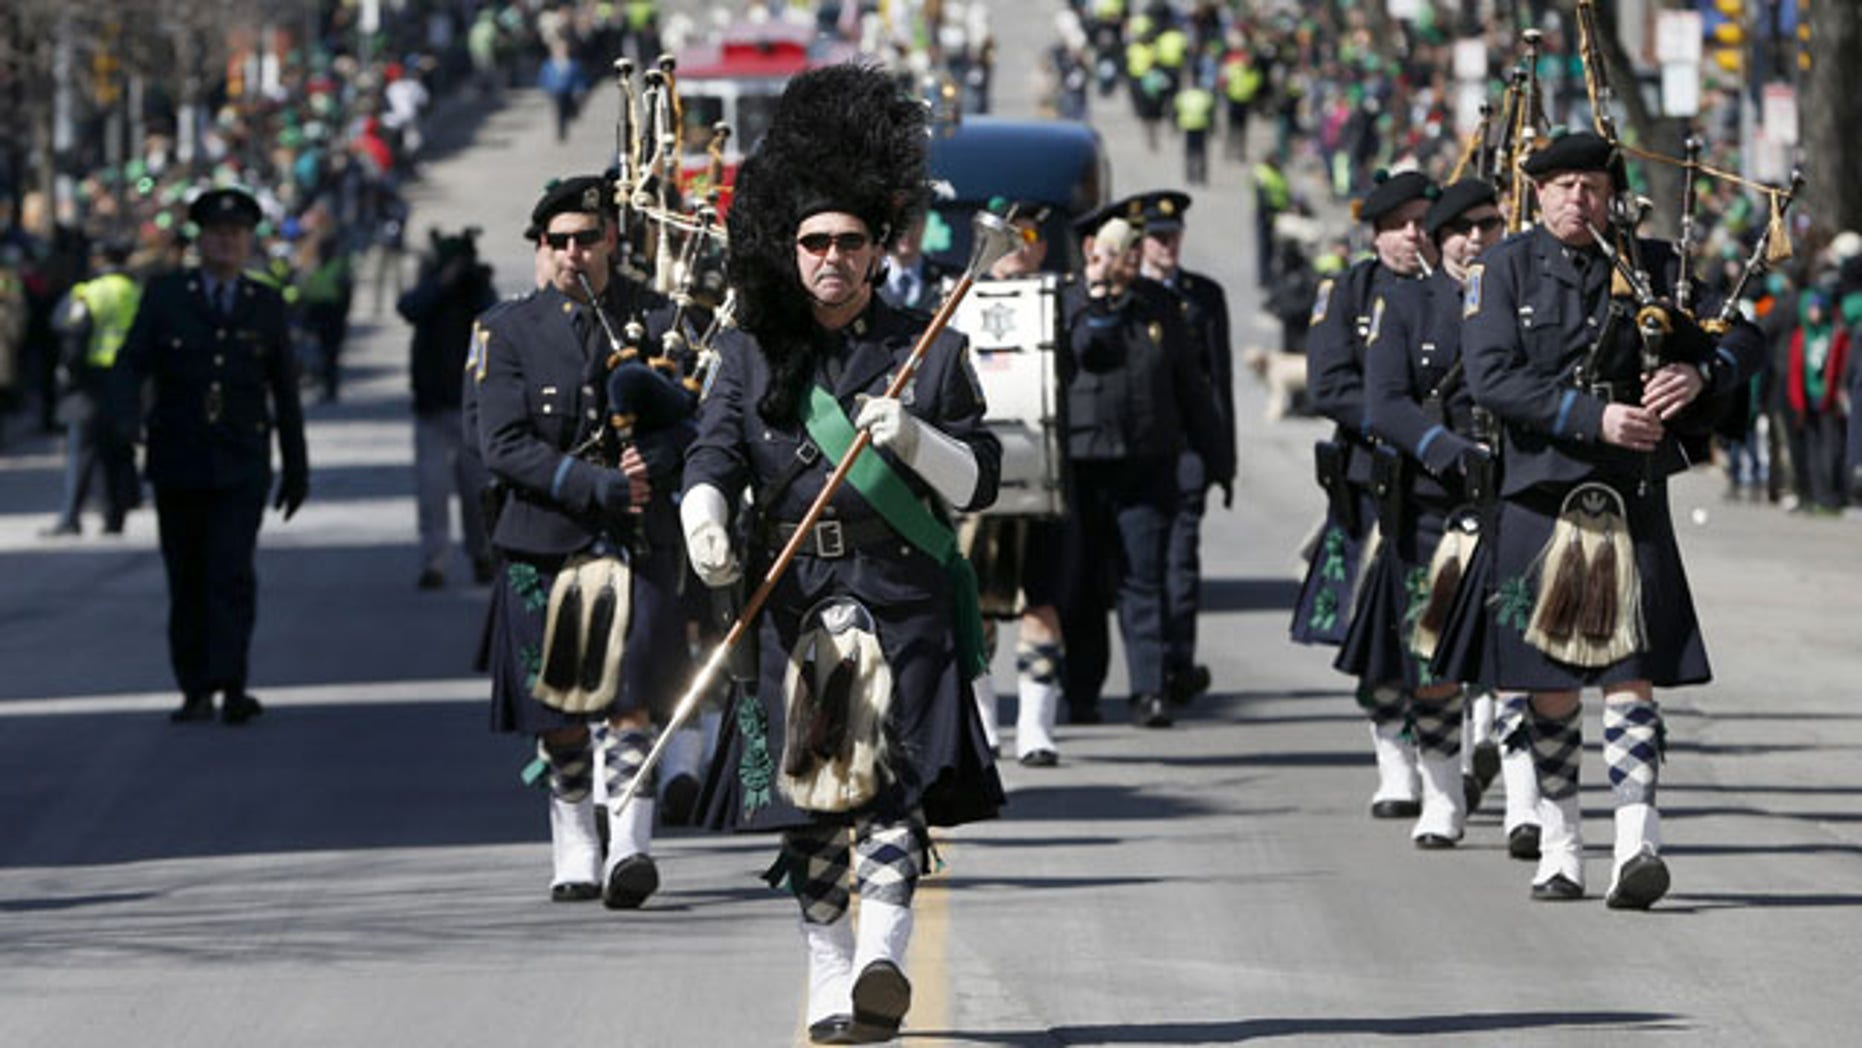 March 16, 2014: The Boston Police Gaelic Column marches in the annual St. Patrick's Day parade in the South Boston neighborhood of Boston. (AP Photo/Michael Dwyer)